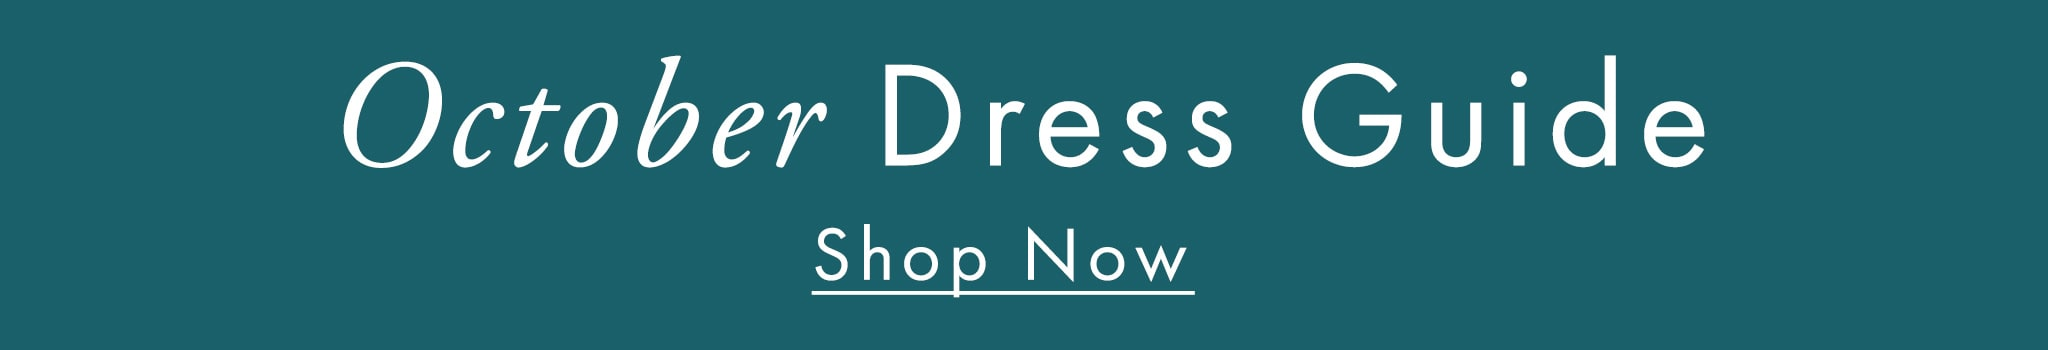 GUESS Dress Guide